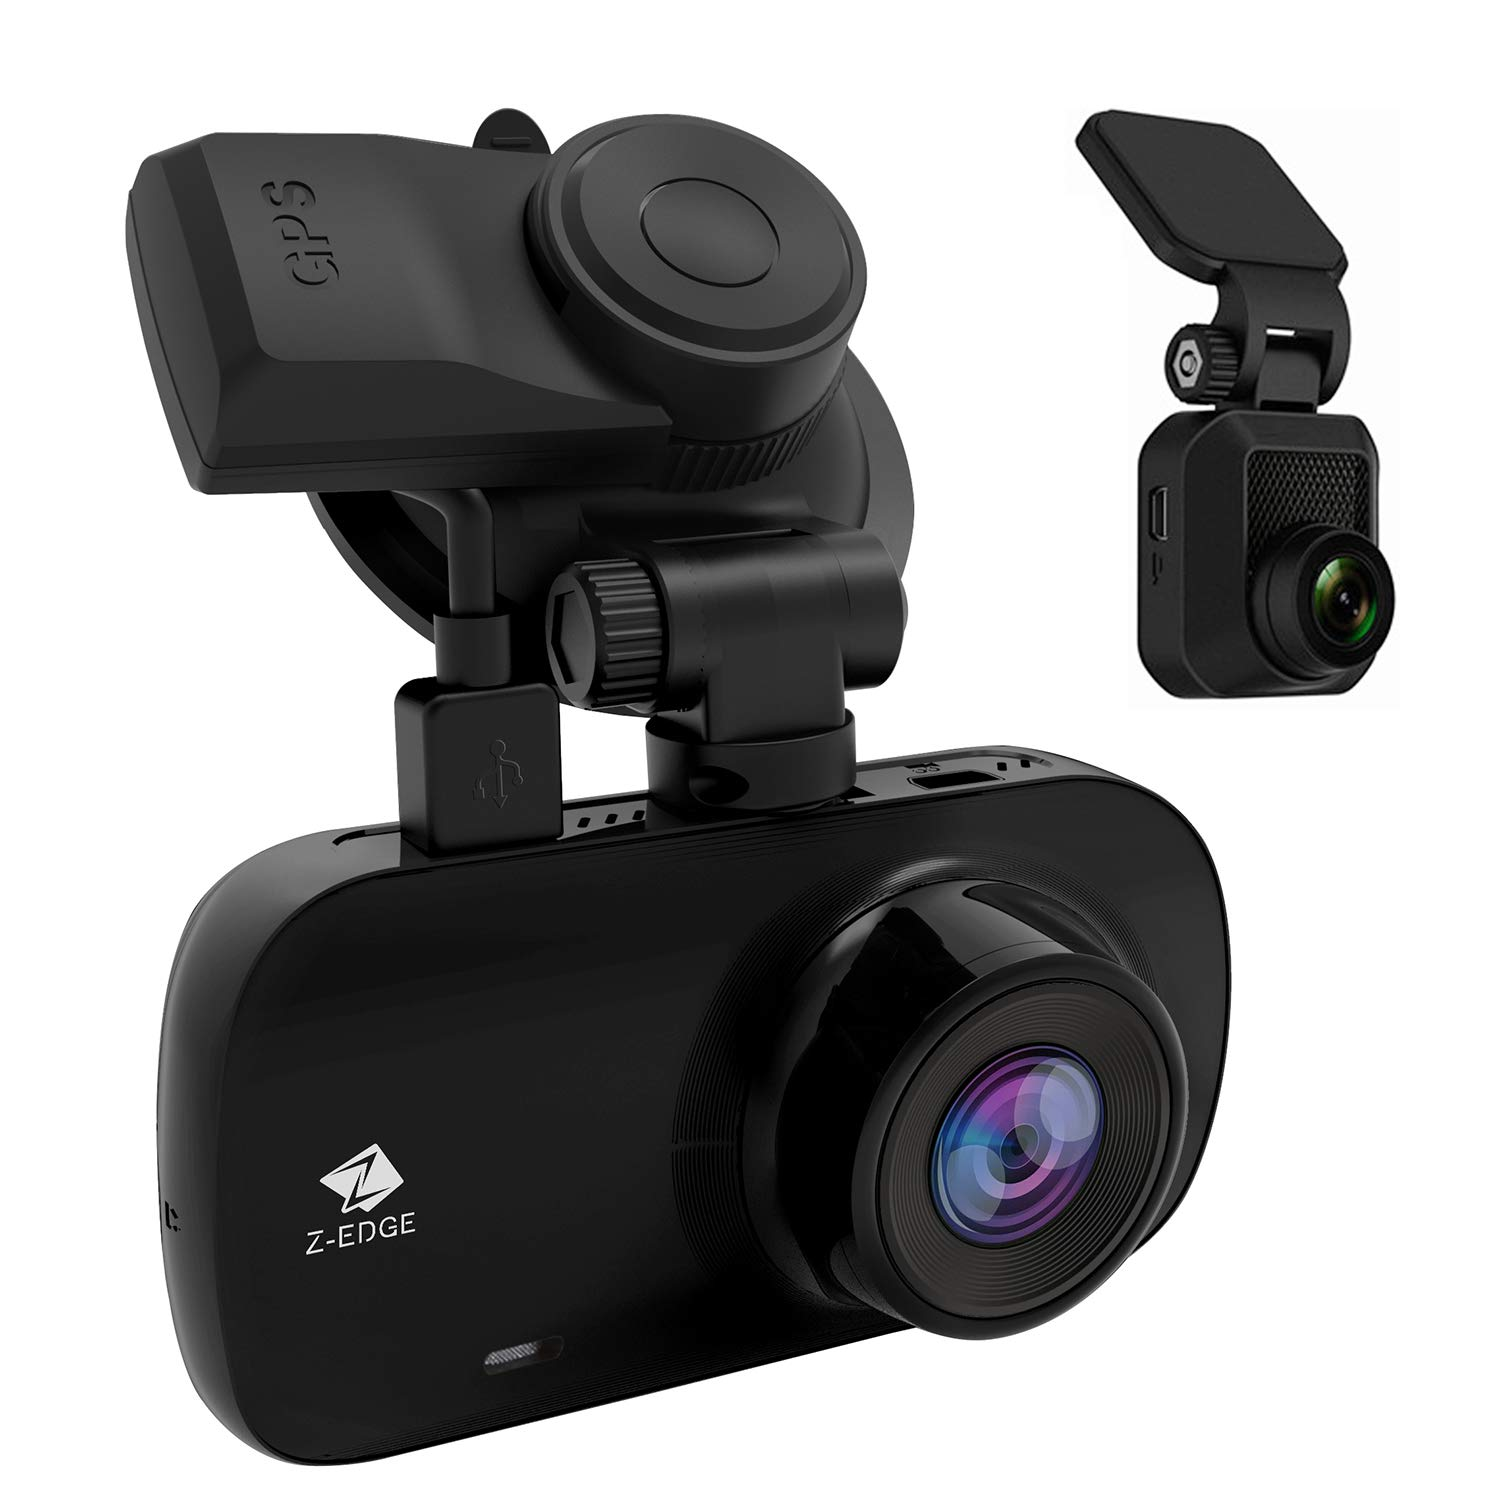 Z-Edge Z3D Dual Lens Dash Cam, 2.7'' Screen Ultra HD 1440P Front & 1080P Rear 150 Degree Wide Angle Front and Rear Dash Cam, Dashboard Camera with GPS, WDR, Low Light Vision, Parking Mode, G-Sensor